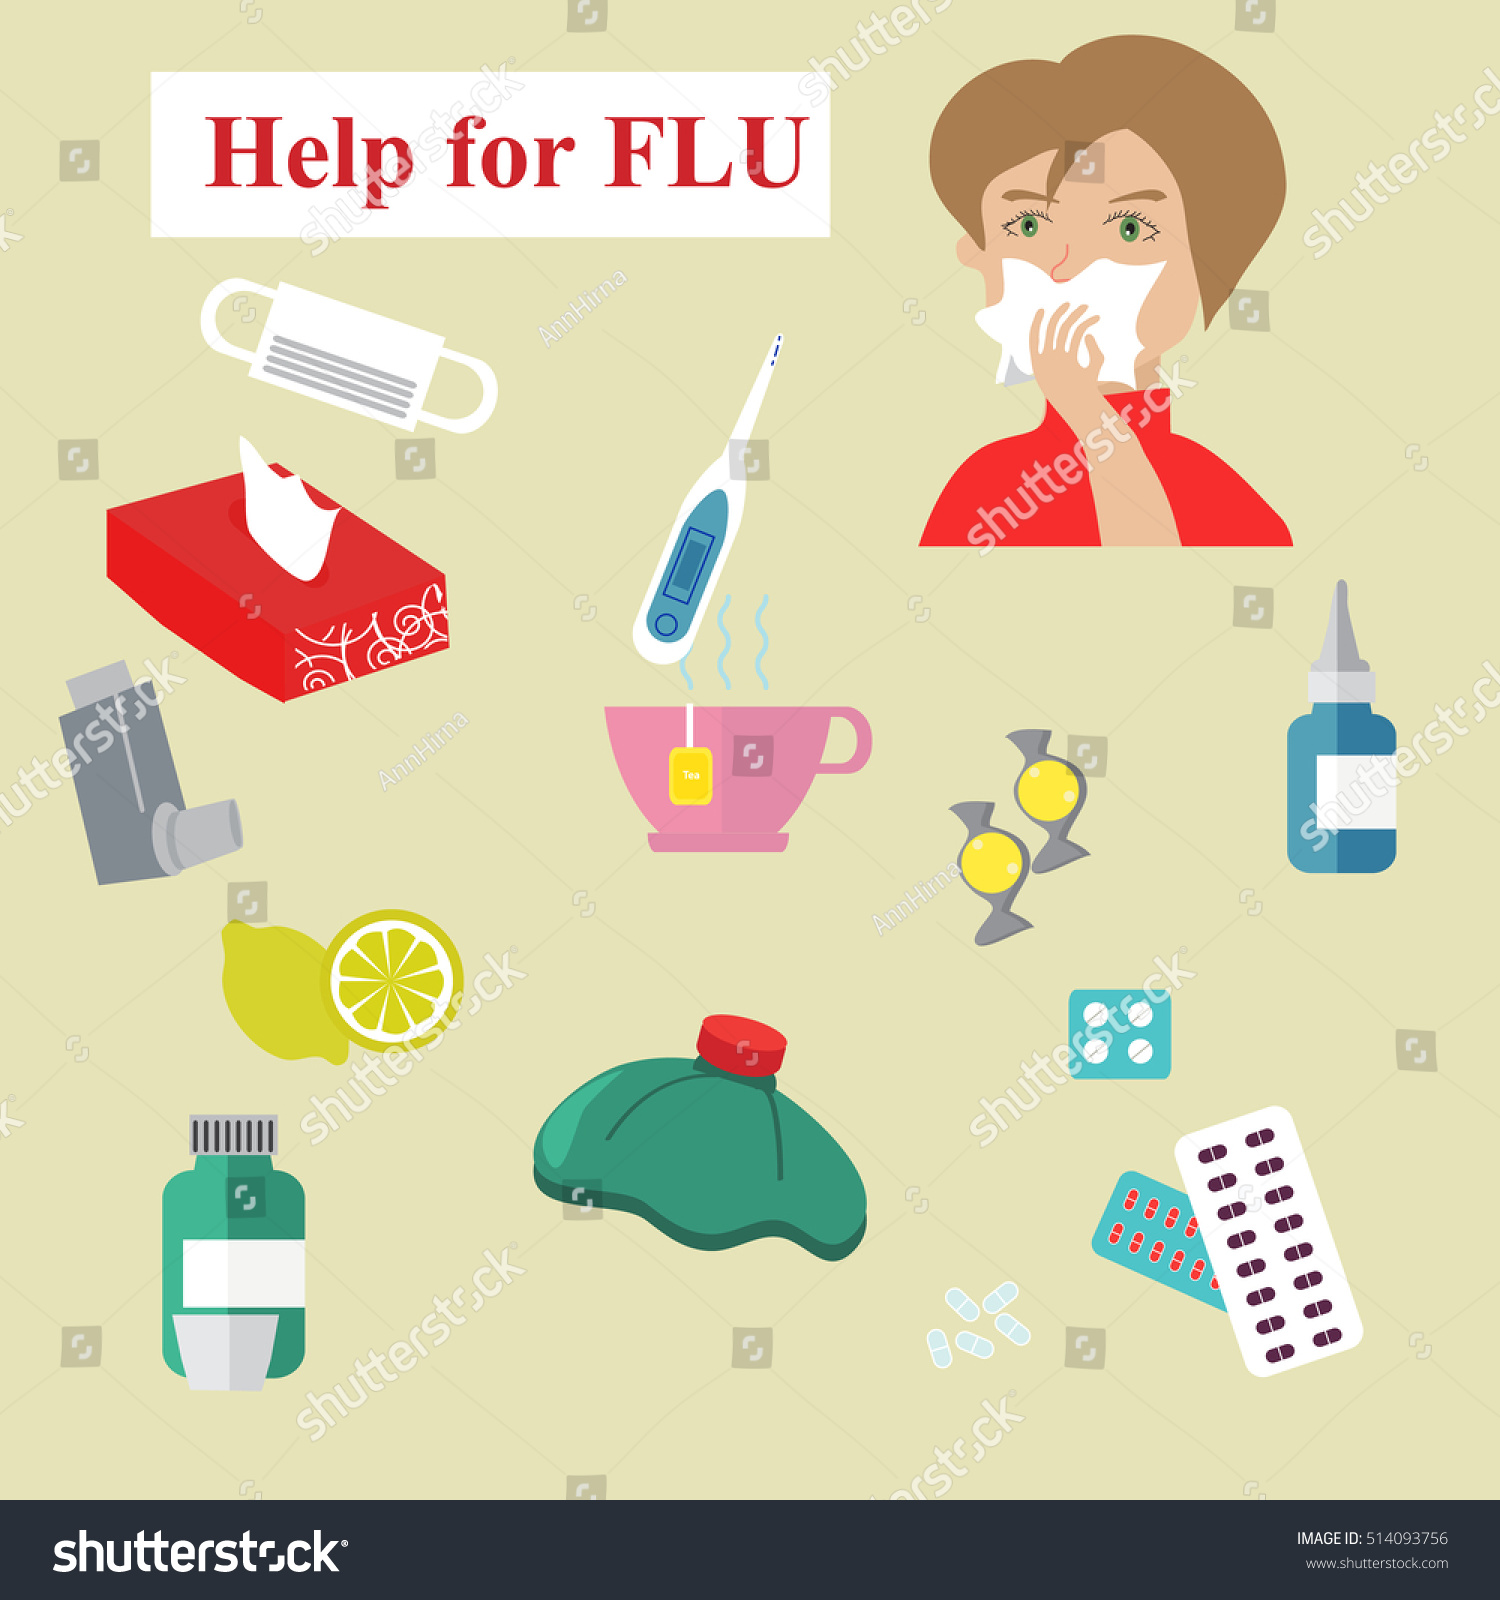 help flu collection vector influenza cold stock vector (royalty free